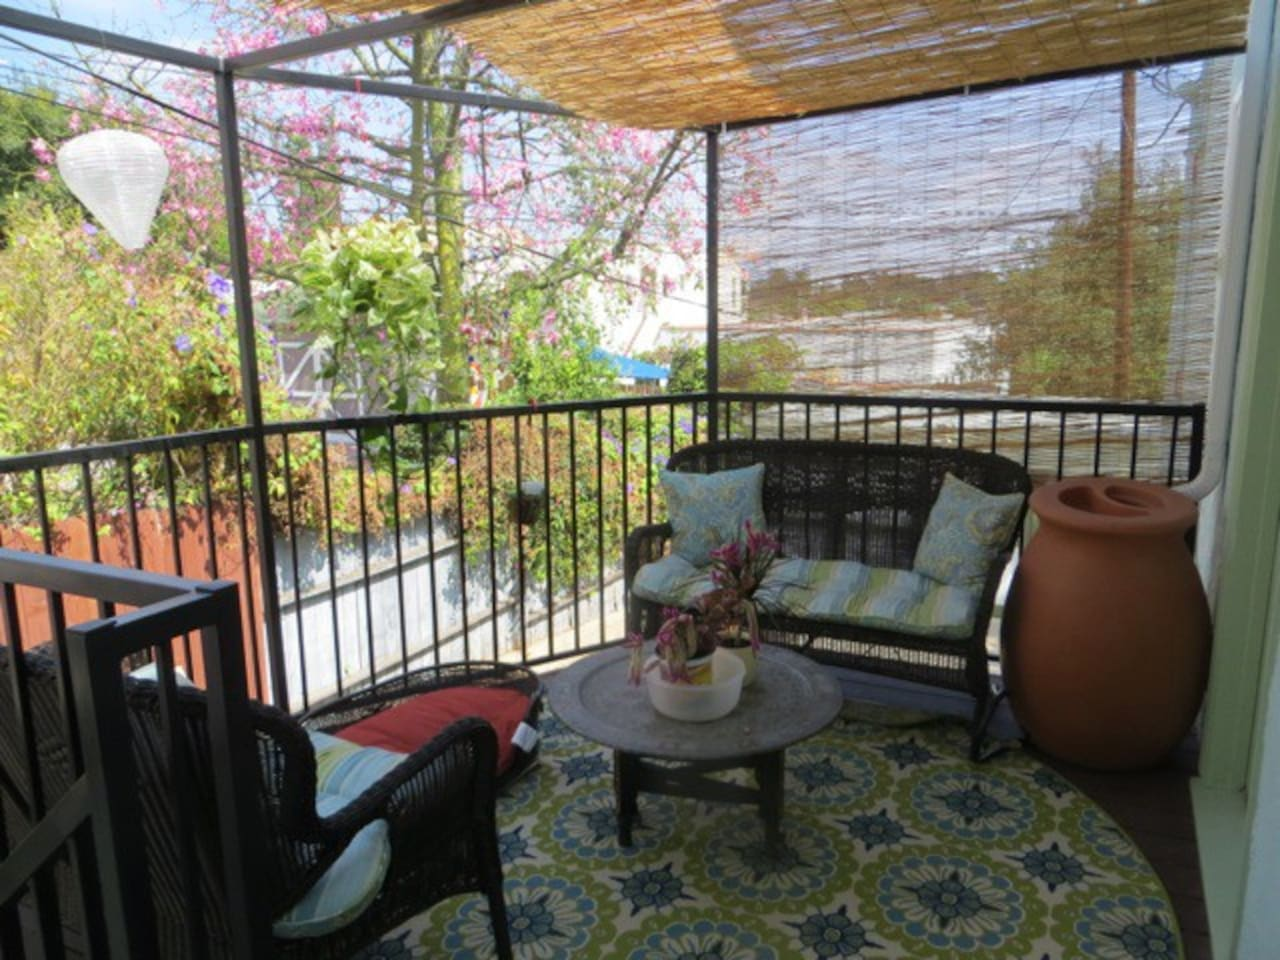 Open your bedroom door and relax on the back deck.